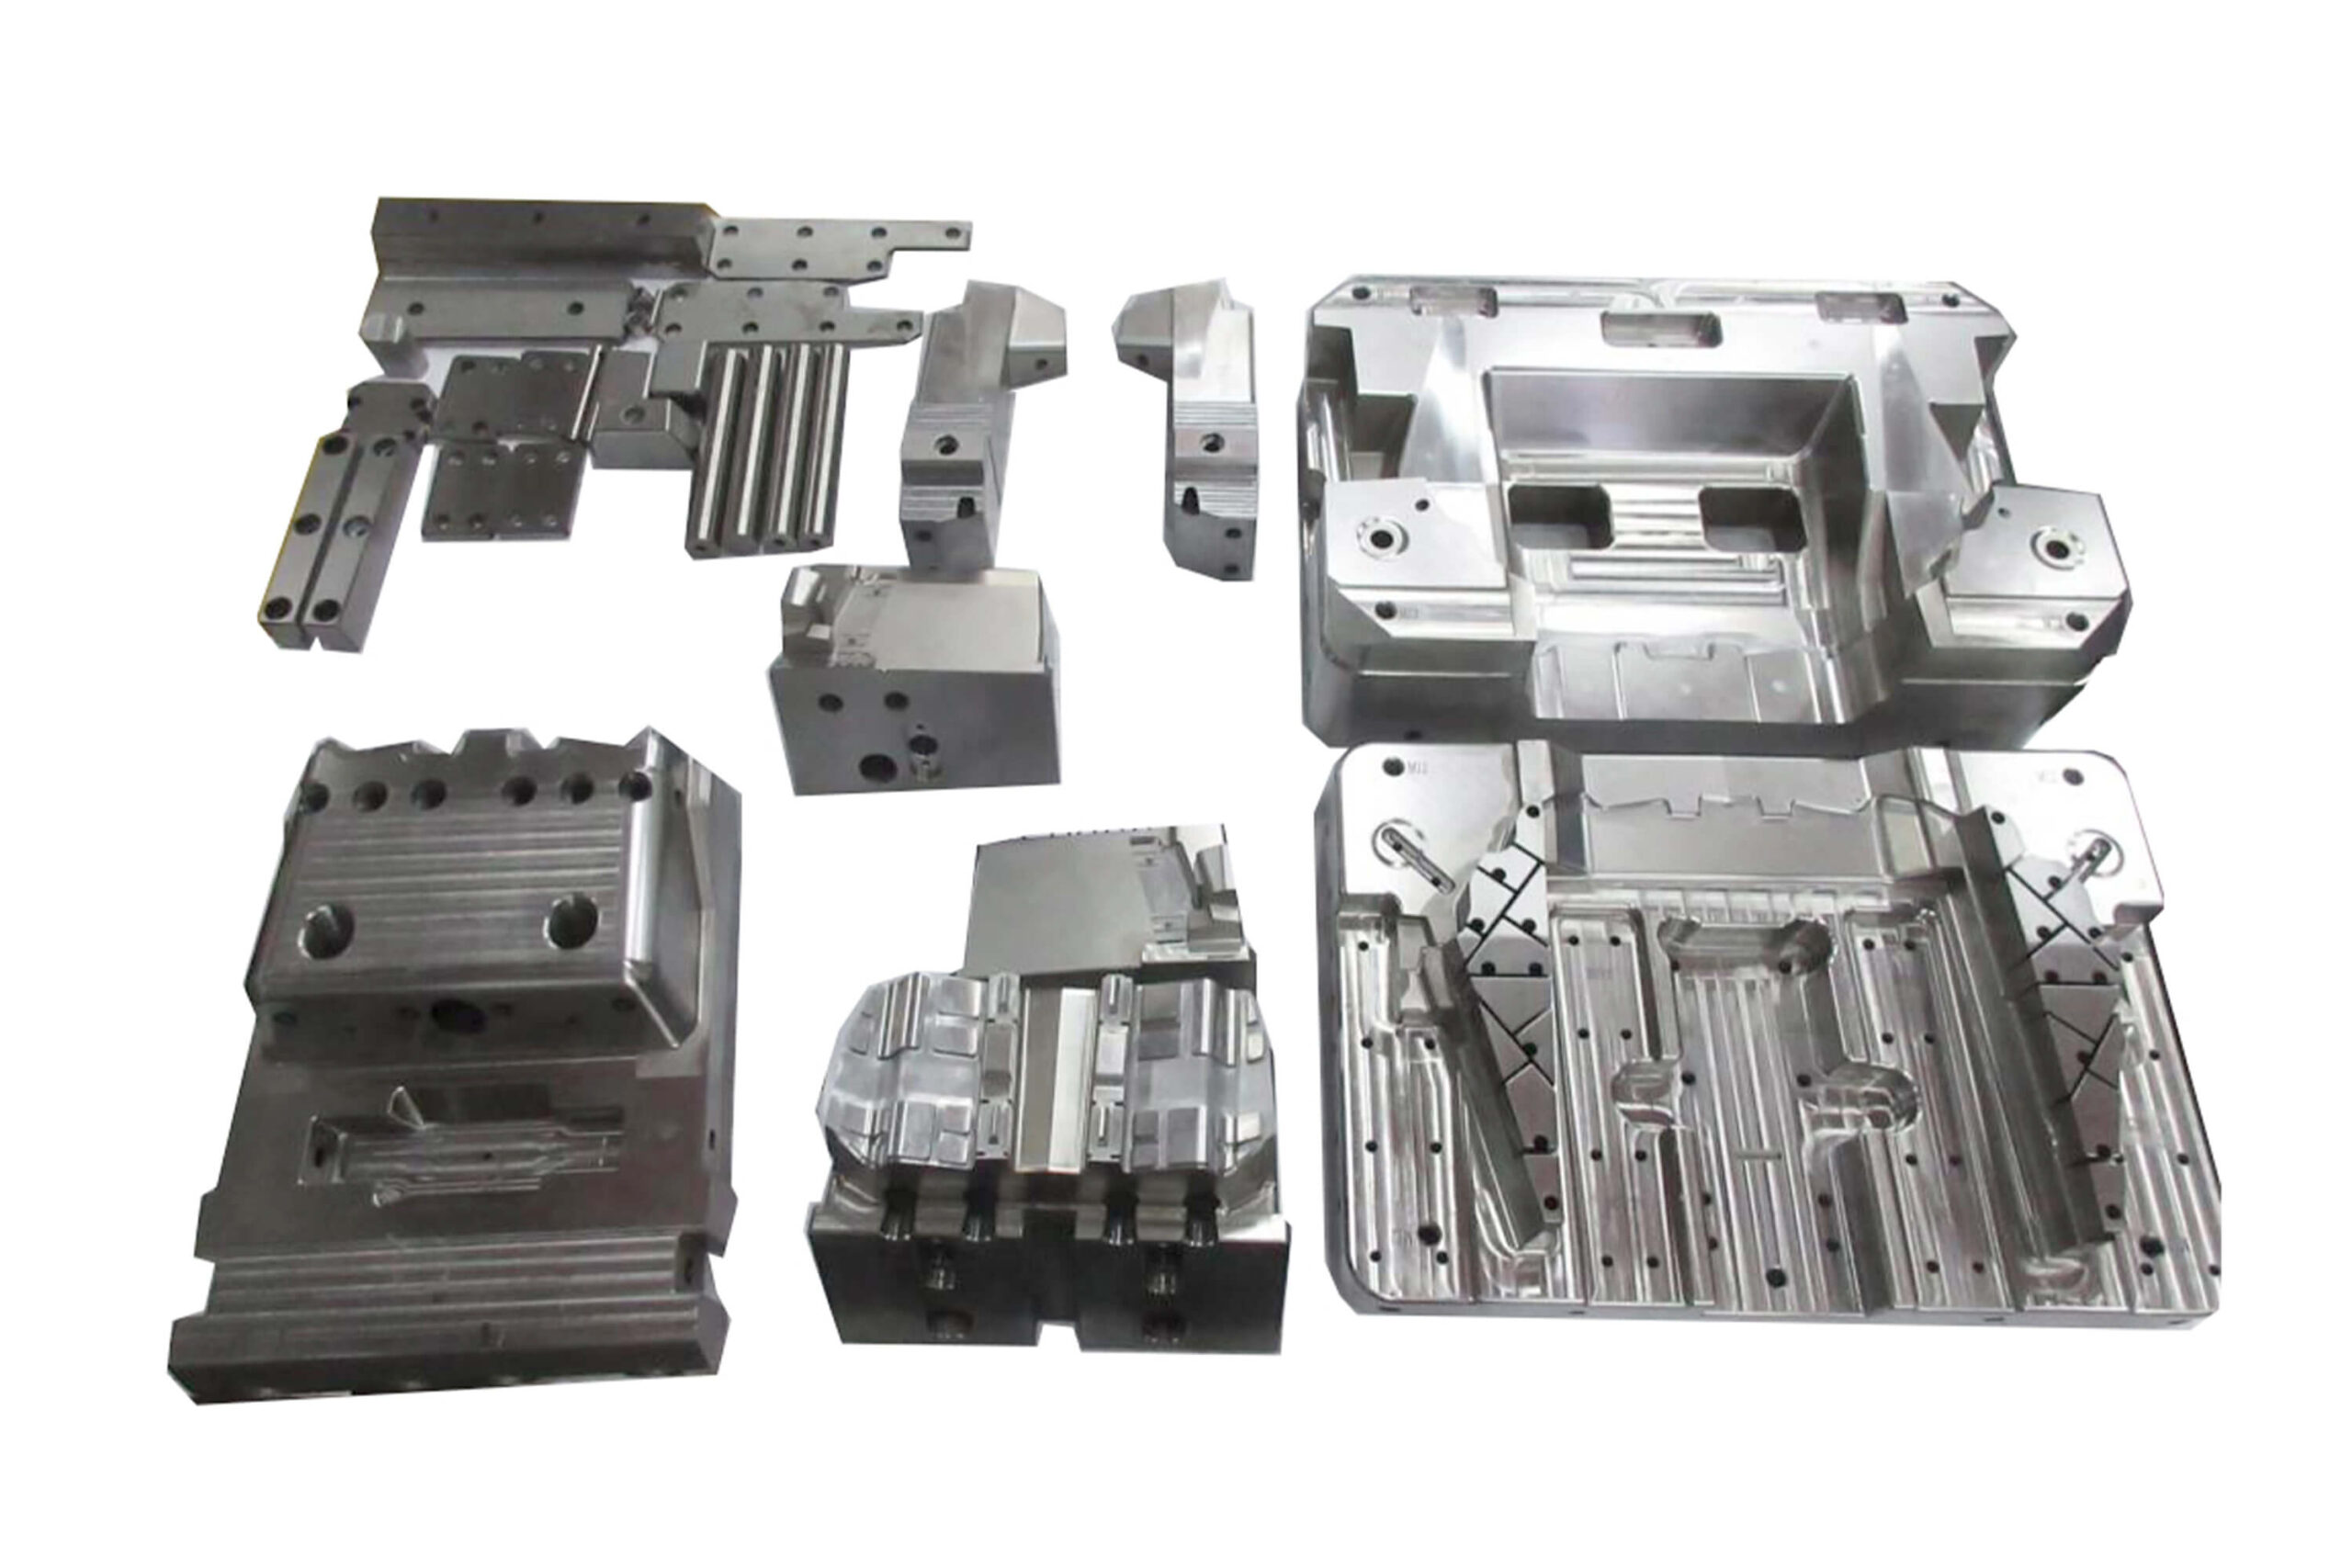 Manufacture of components